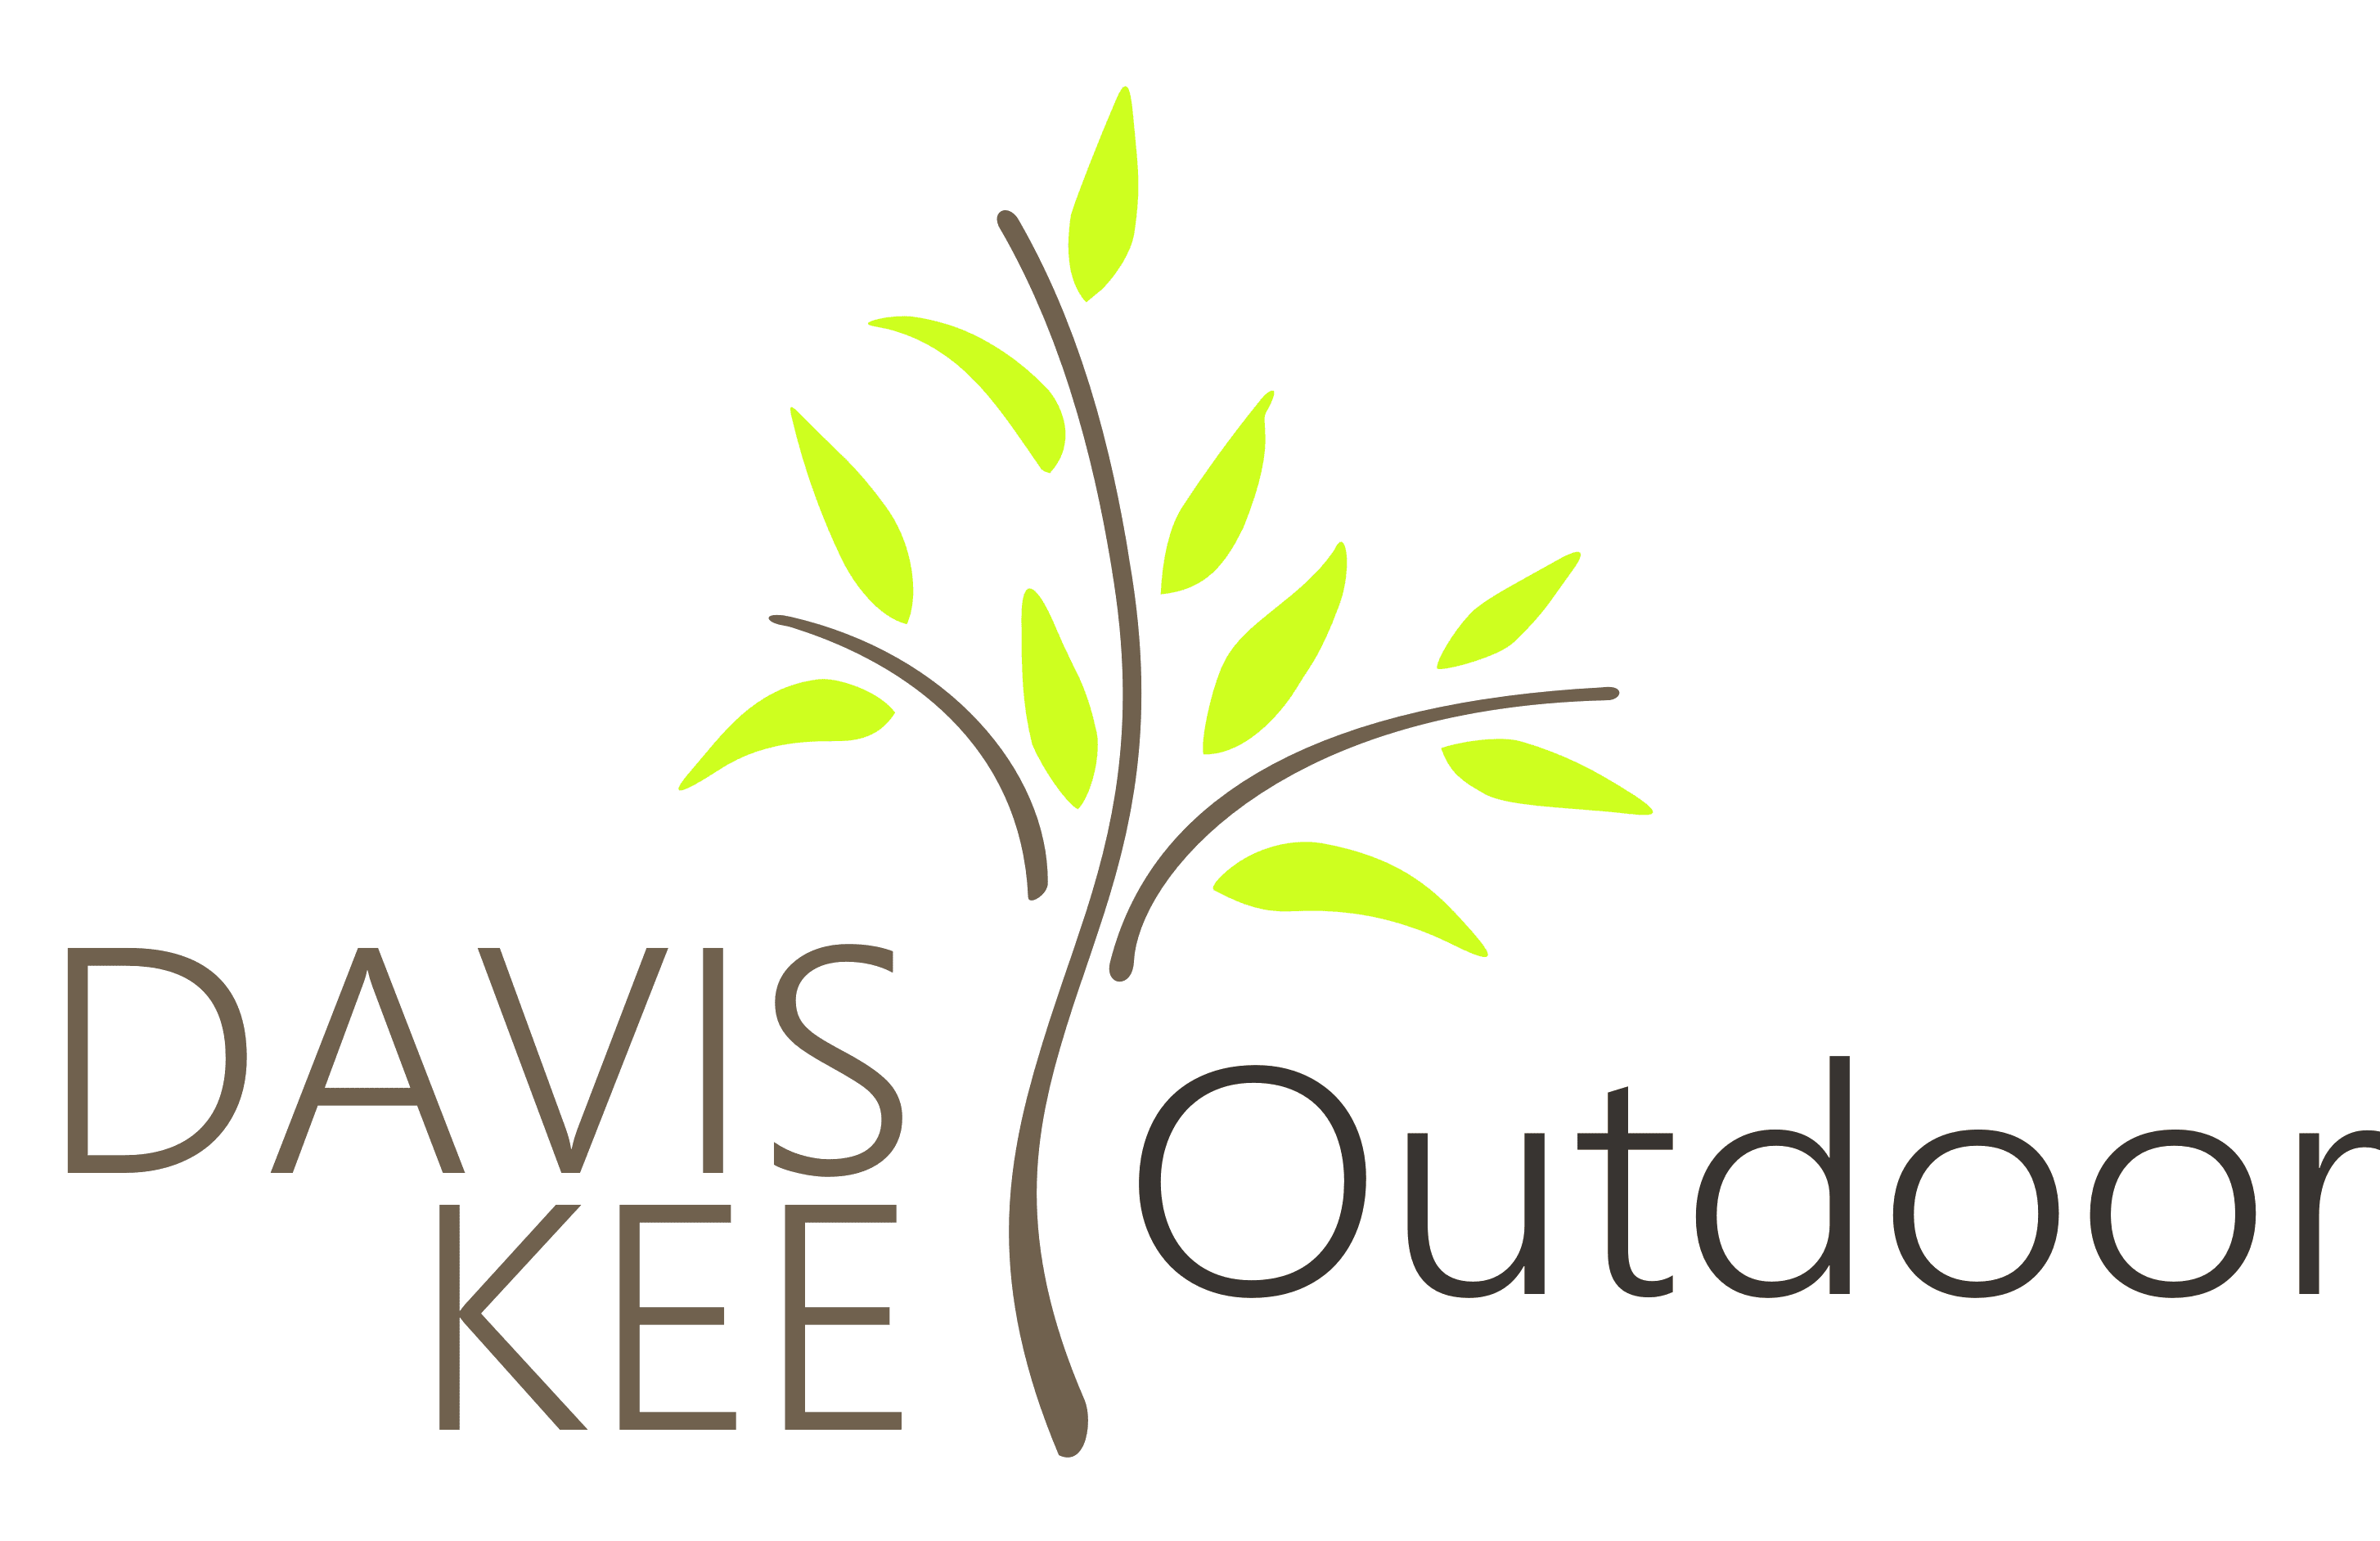 Chattanooga's Premier Lawn Care and Landscaping Professionals, Davis Kee Outdoor Professional Lawn Care and Landscaping Services.